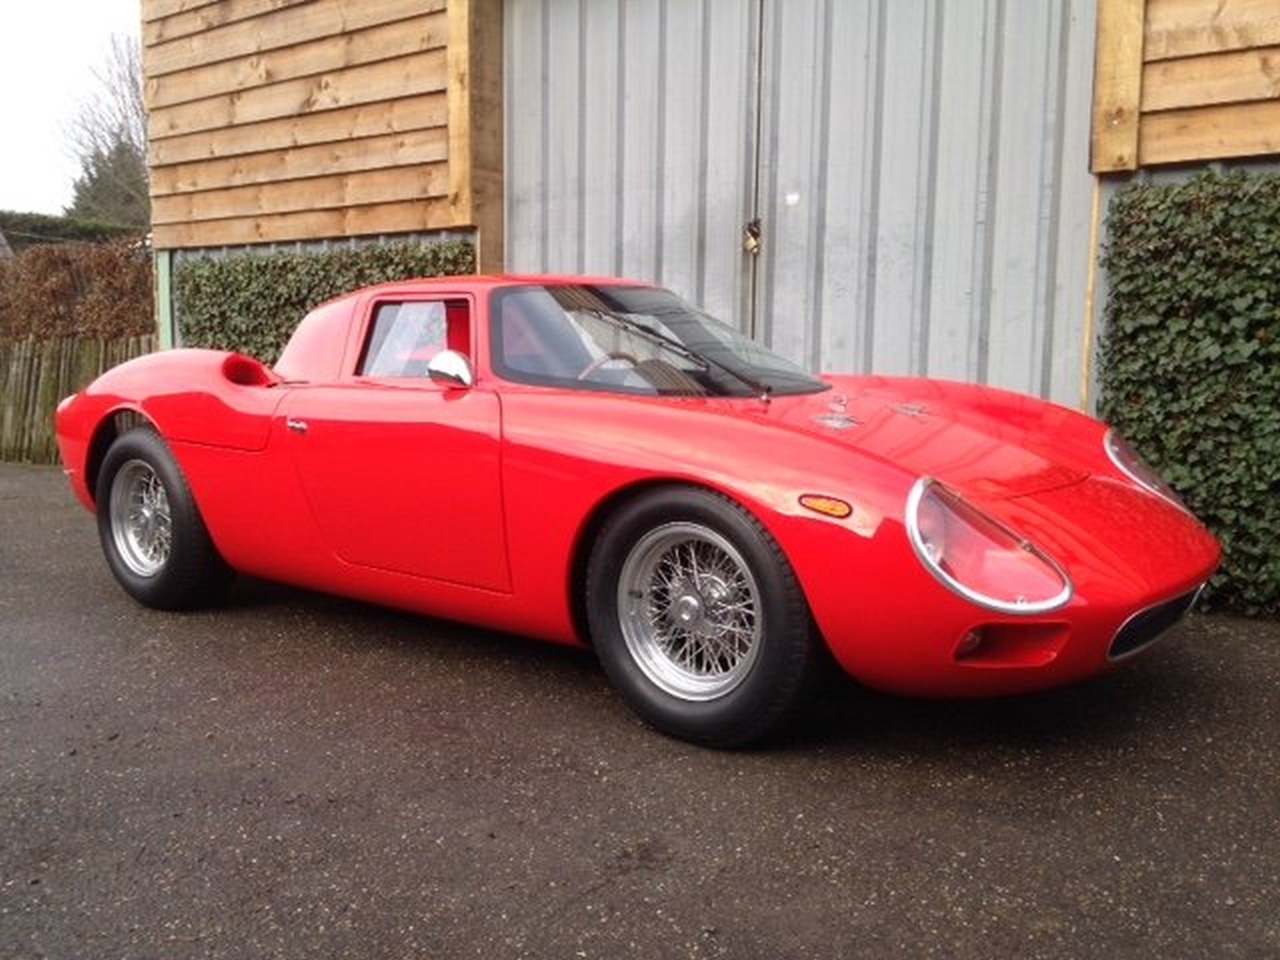 ferrari-250-LM-replica-red-brandoli-1